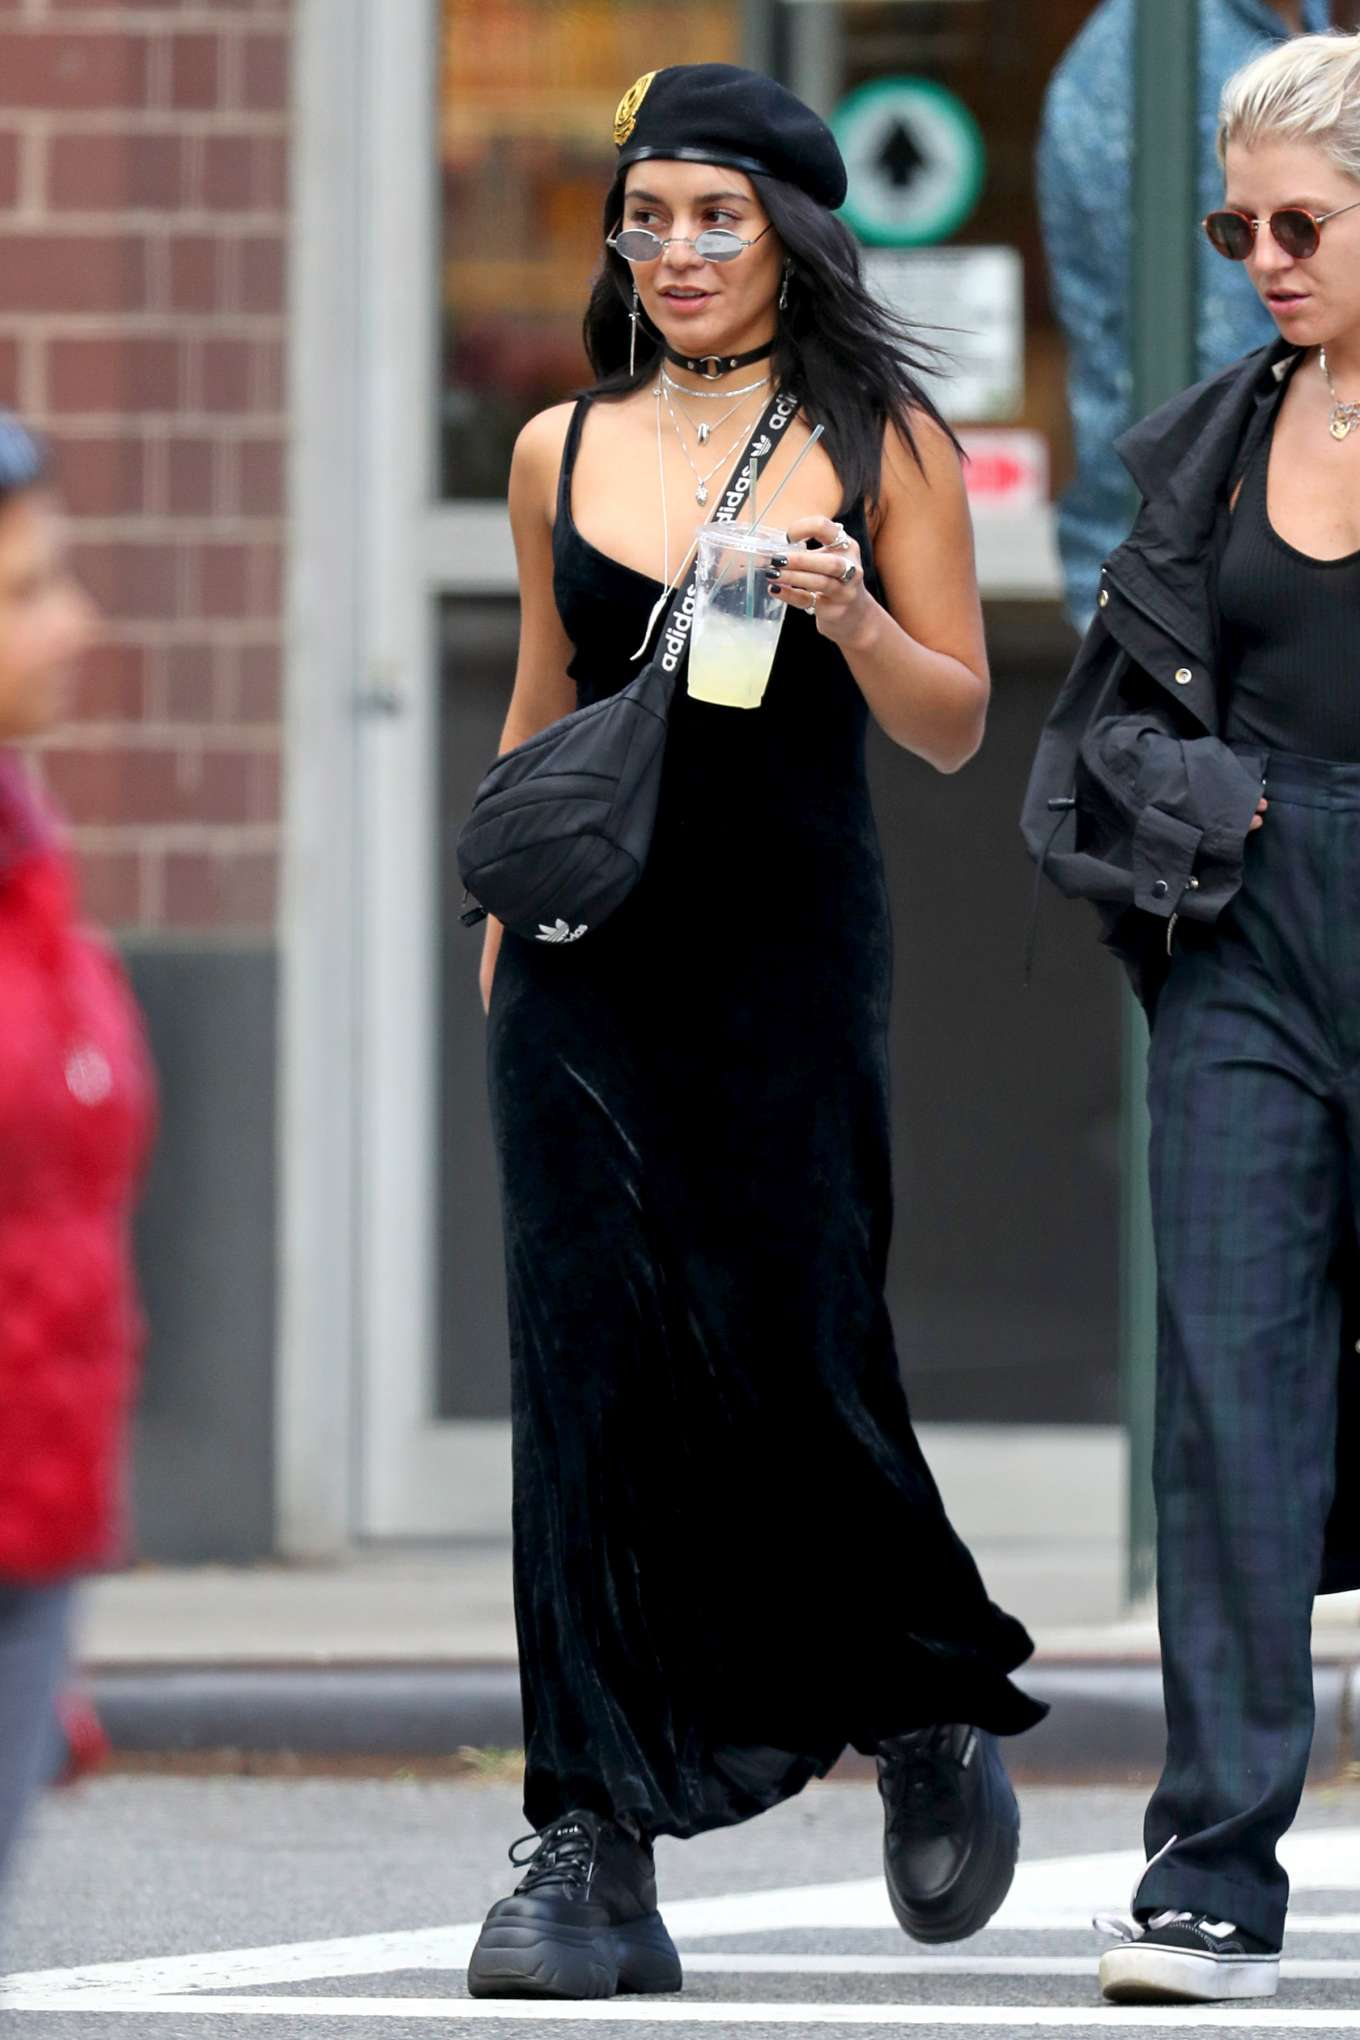 Vanessa Hudgens 2019 : Vanessa Hudgens – All in black out and about in New York City-08